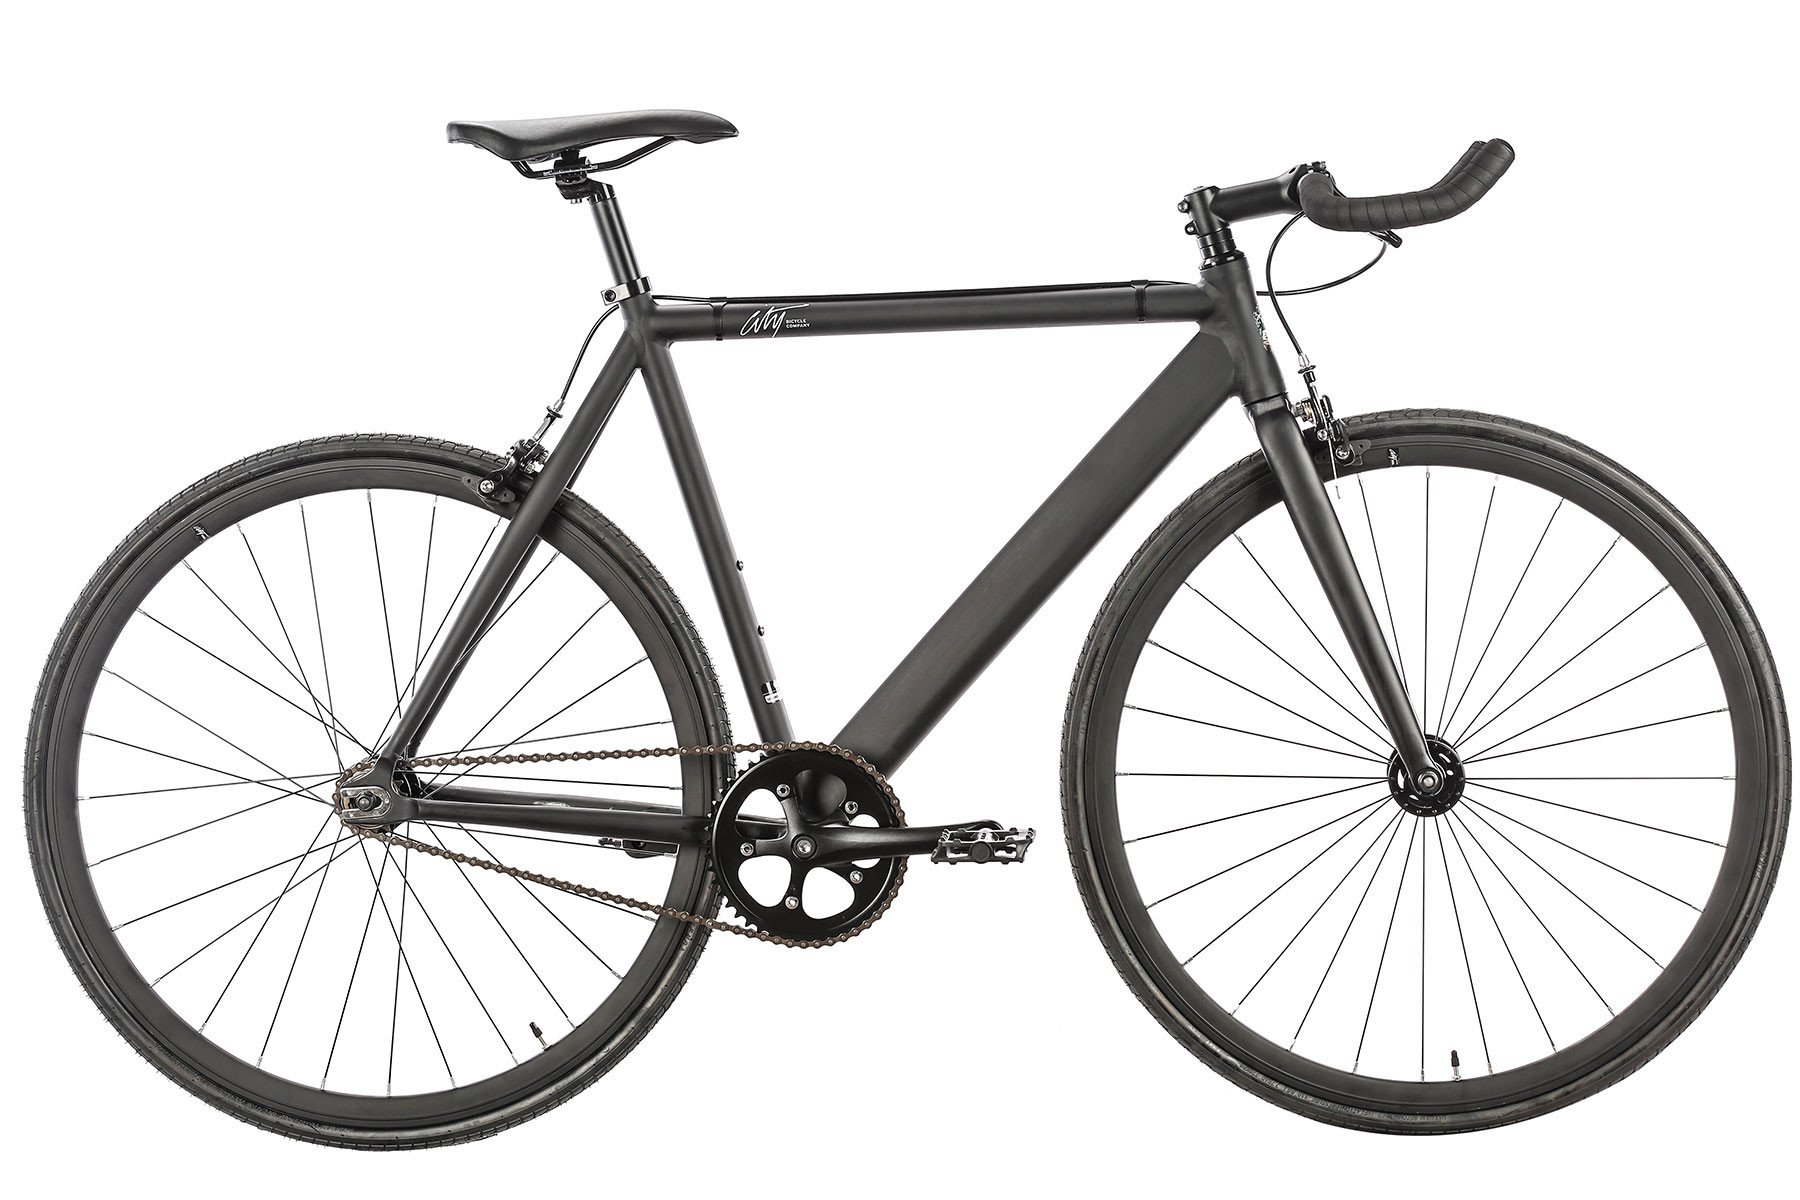 The Los Angeles Type 001 | City Bicycle Co. Fixed Gear